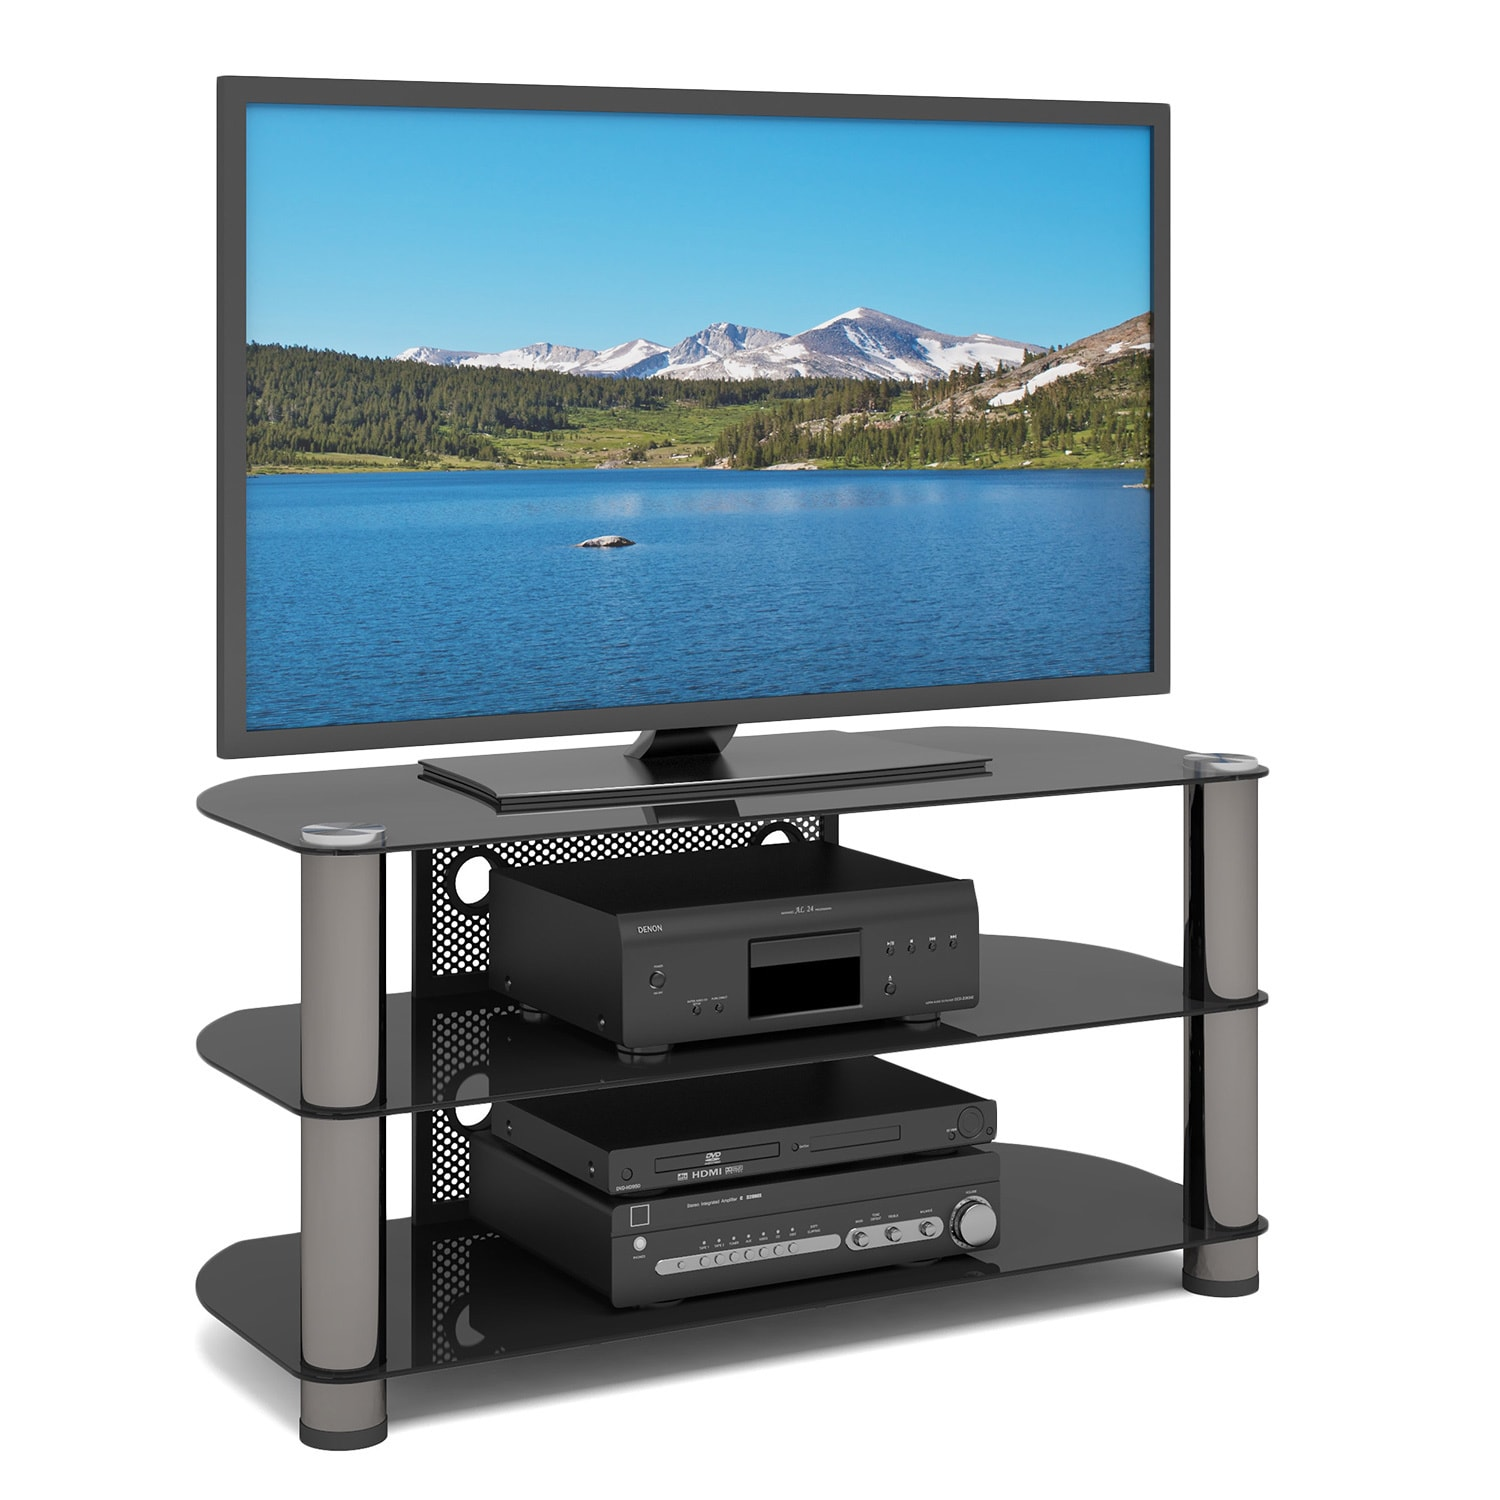 Sonax NY-9424 New York 42-inch Metal and Glass TV Stand at Sears.com